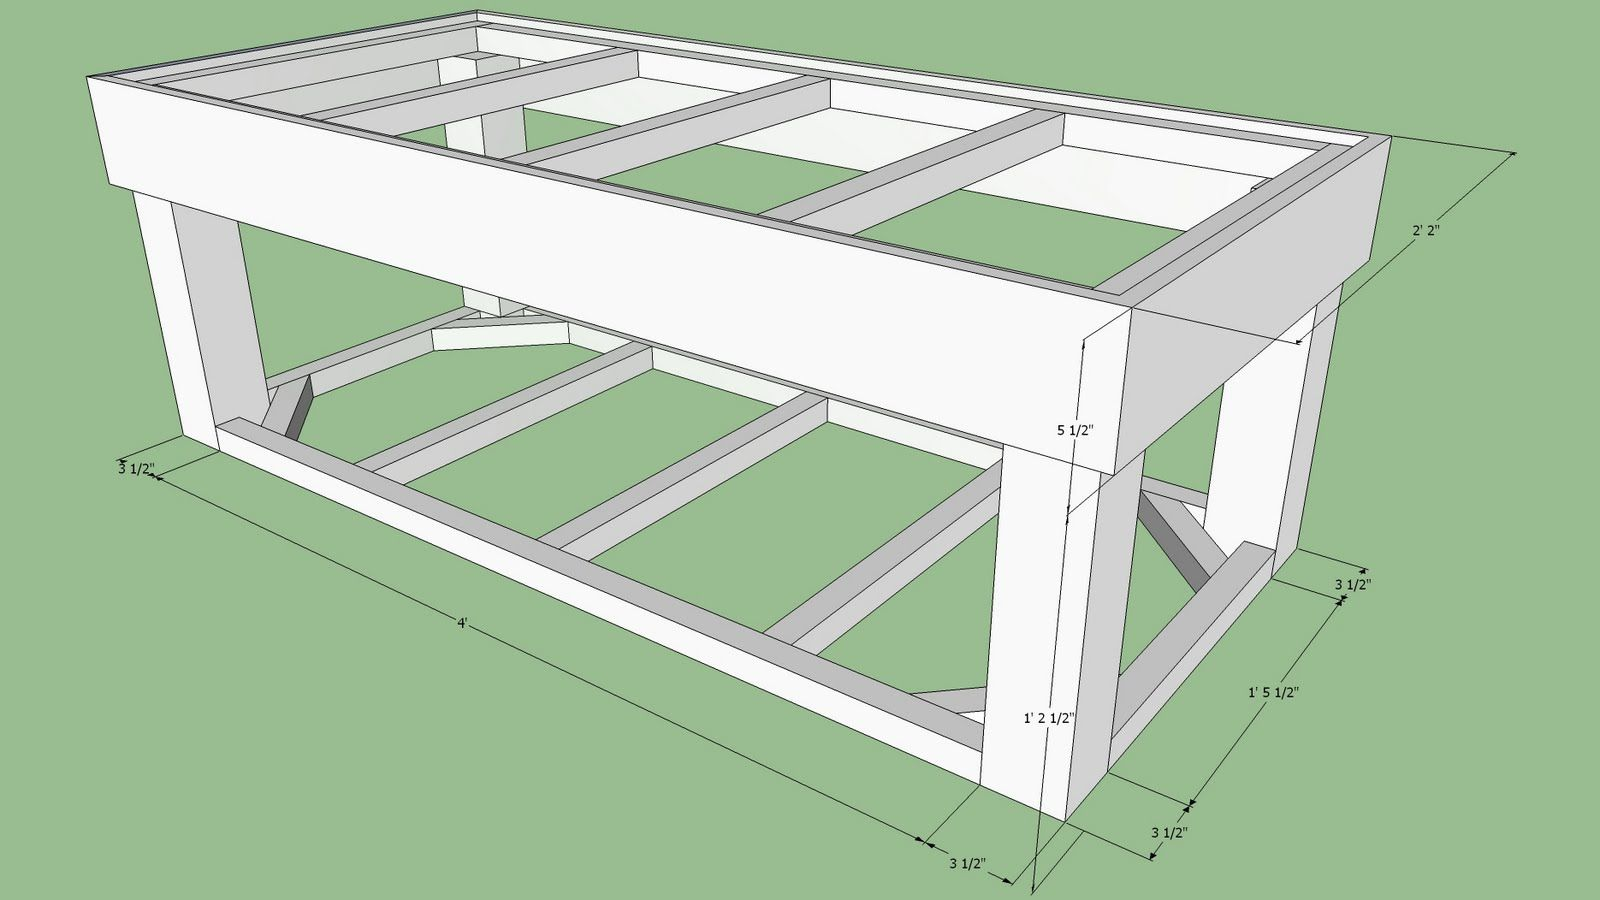 My architect husband built me a laundry stand a provided sketches to my architect husband built me a laundry stand a provided sketches to build one for yourself solutioingenieria Image collections